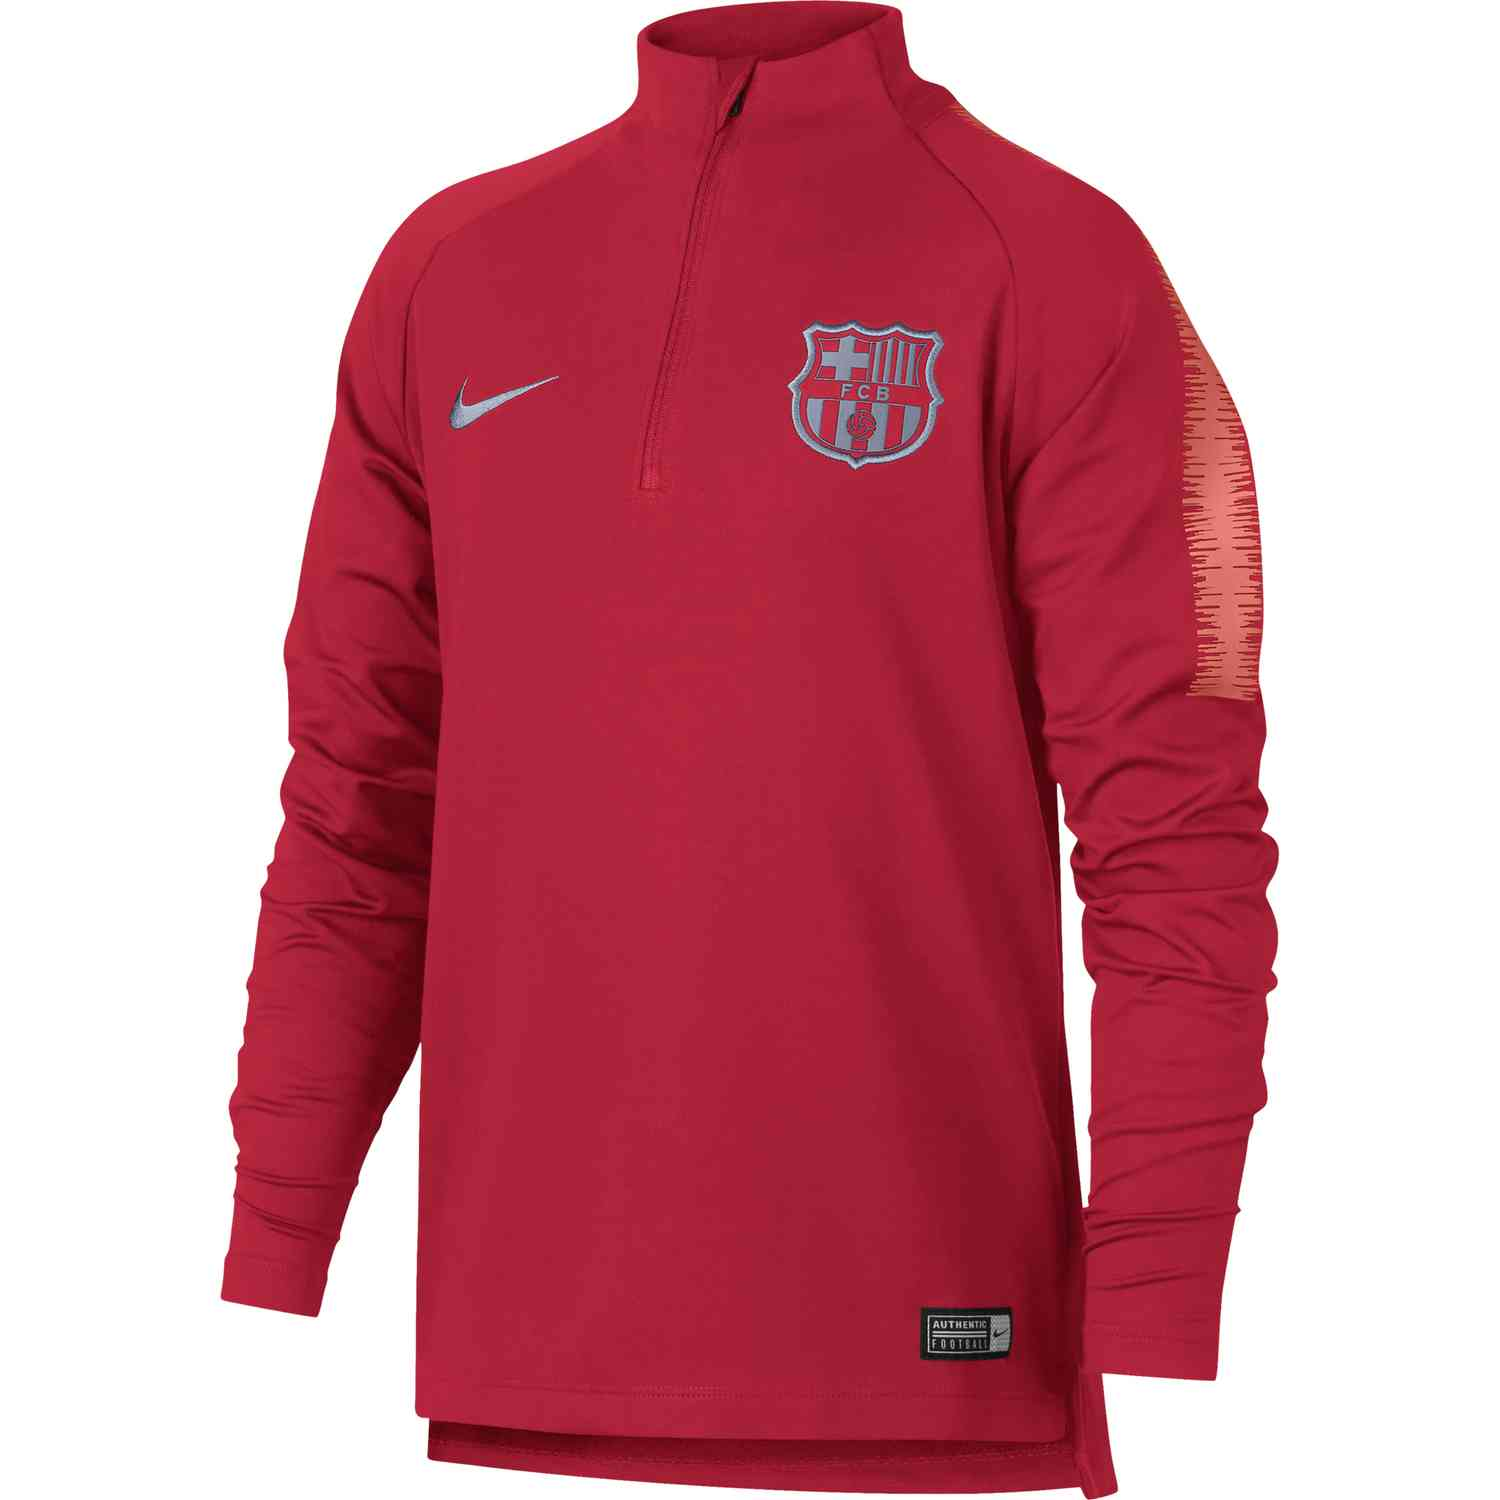 5fd49b064c2 Nike Barcelona Dry Squad Drill Top - Youth - Tropical Pink - SoccerPro